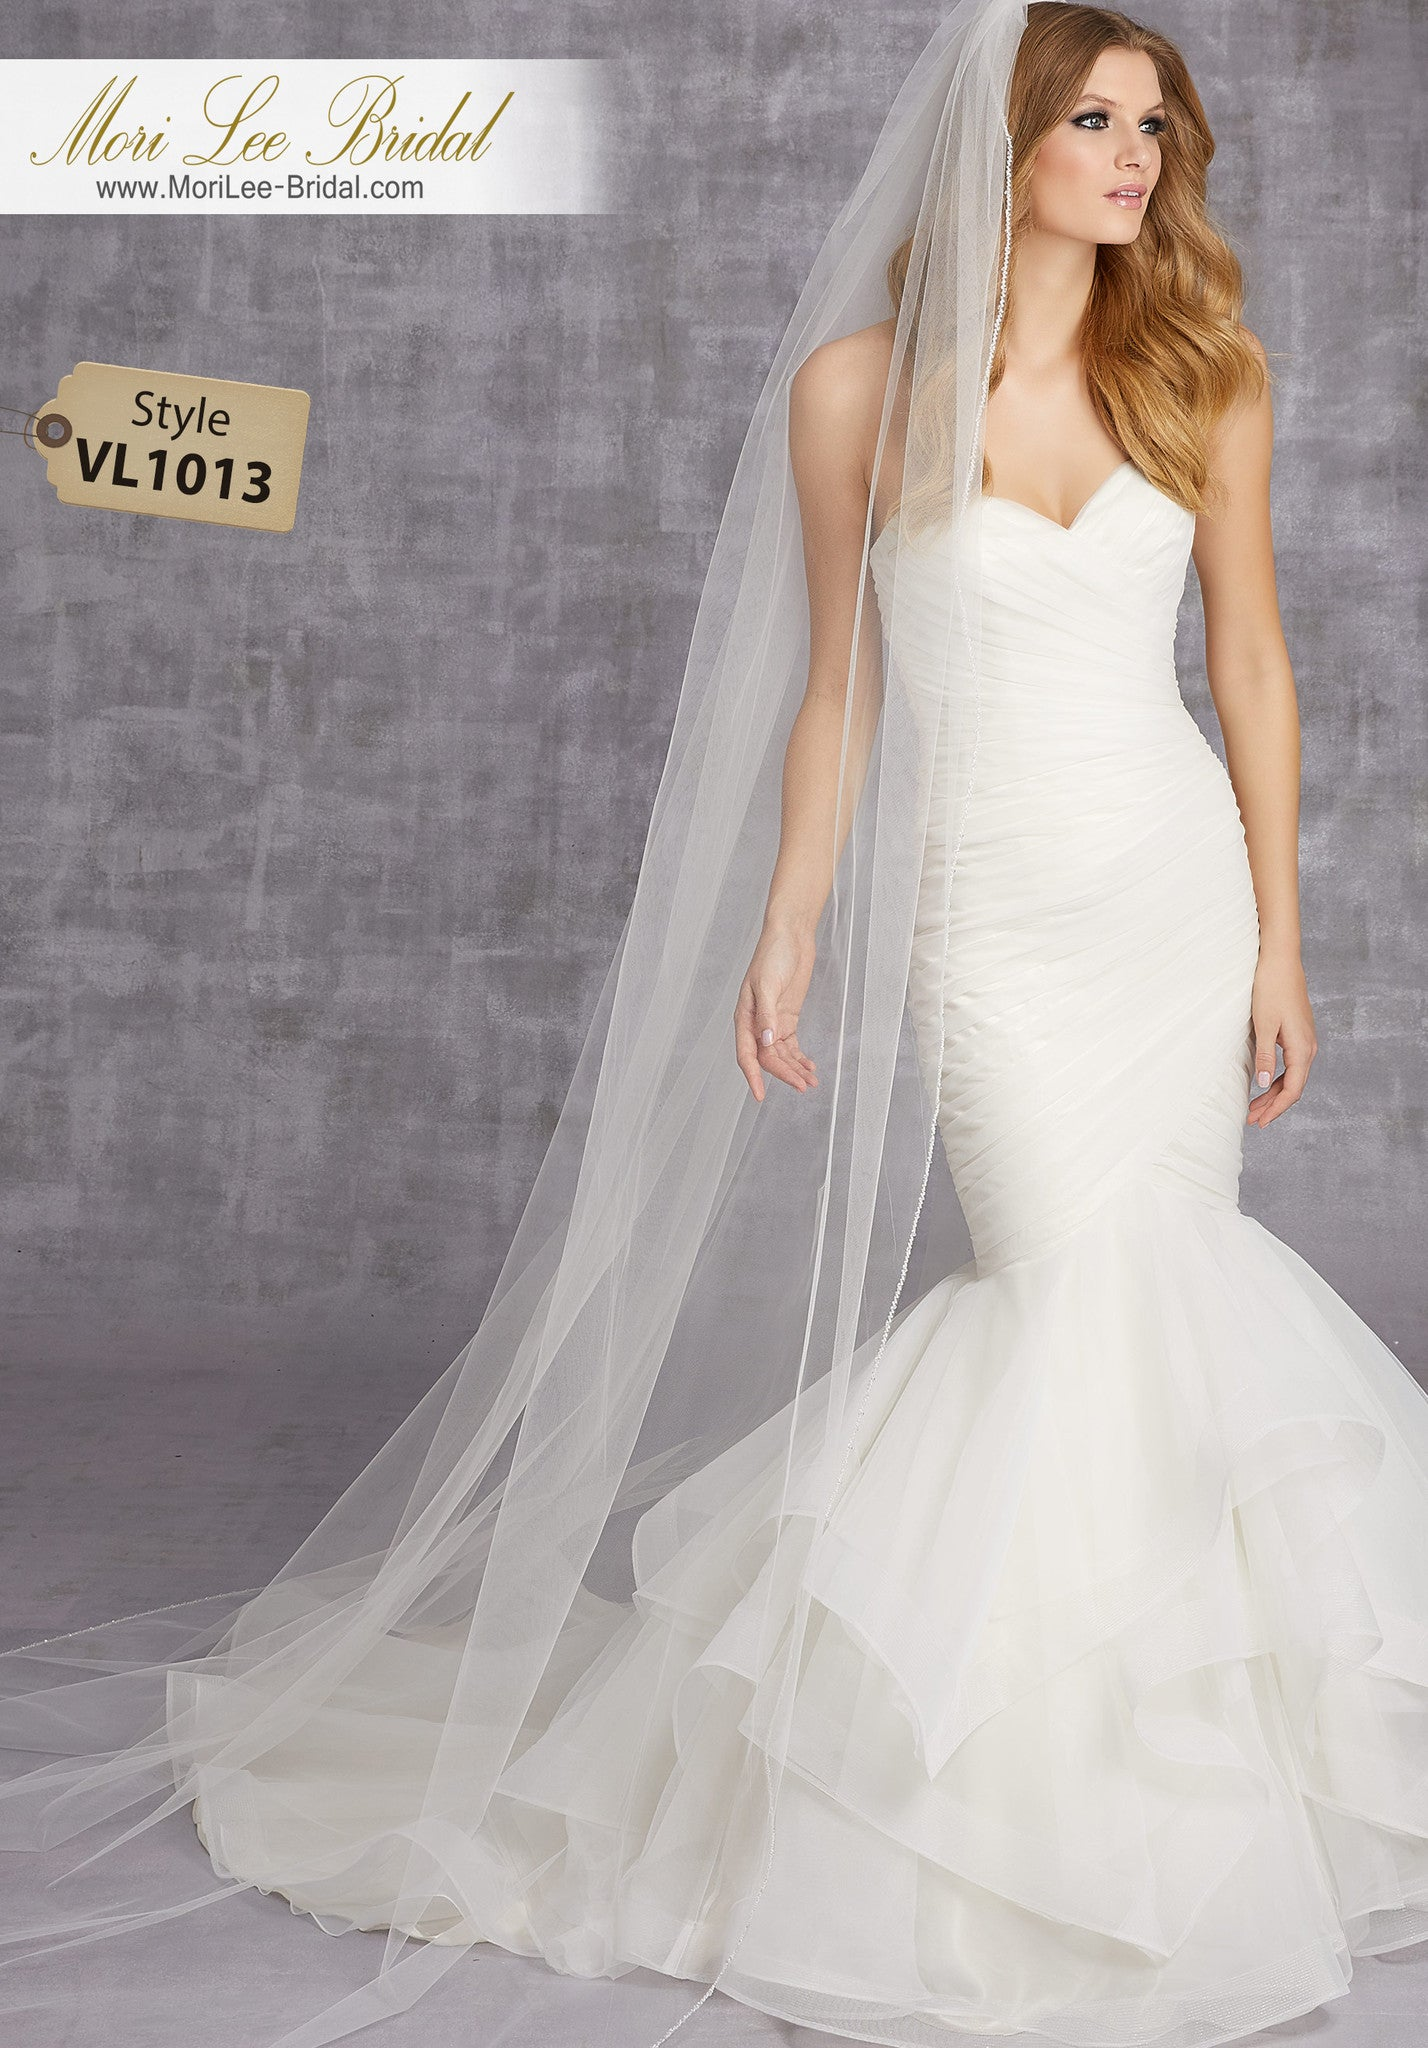 VL1013F - Mori Lee Bridal